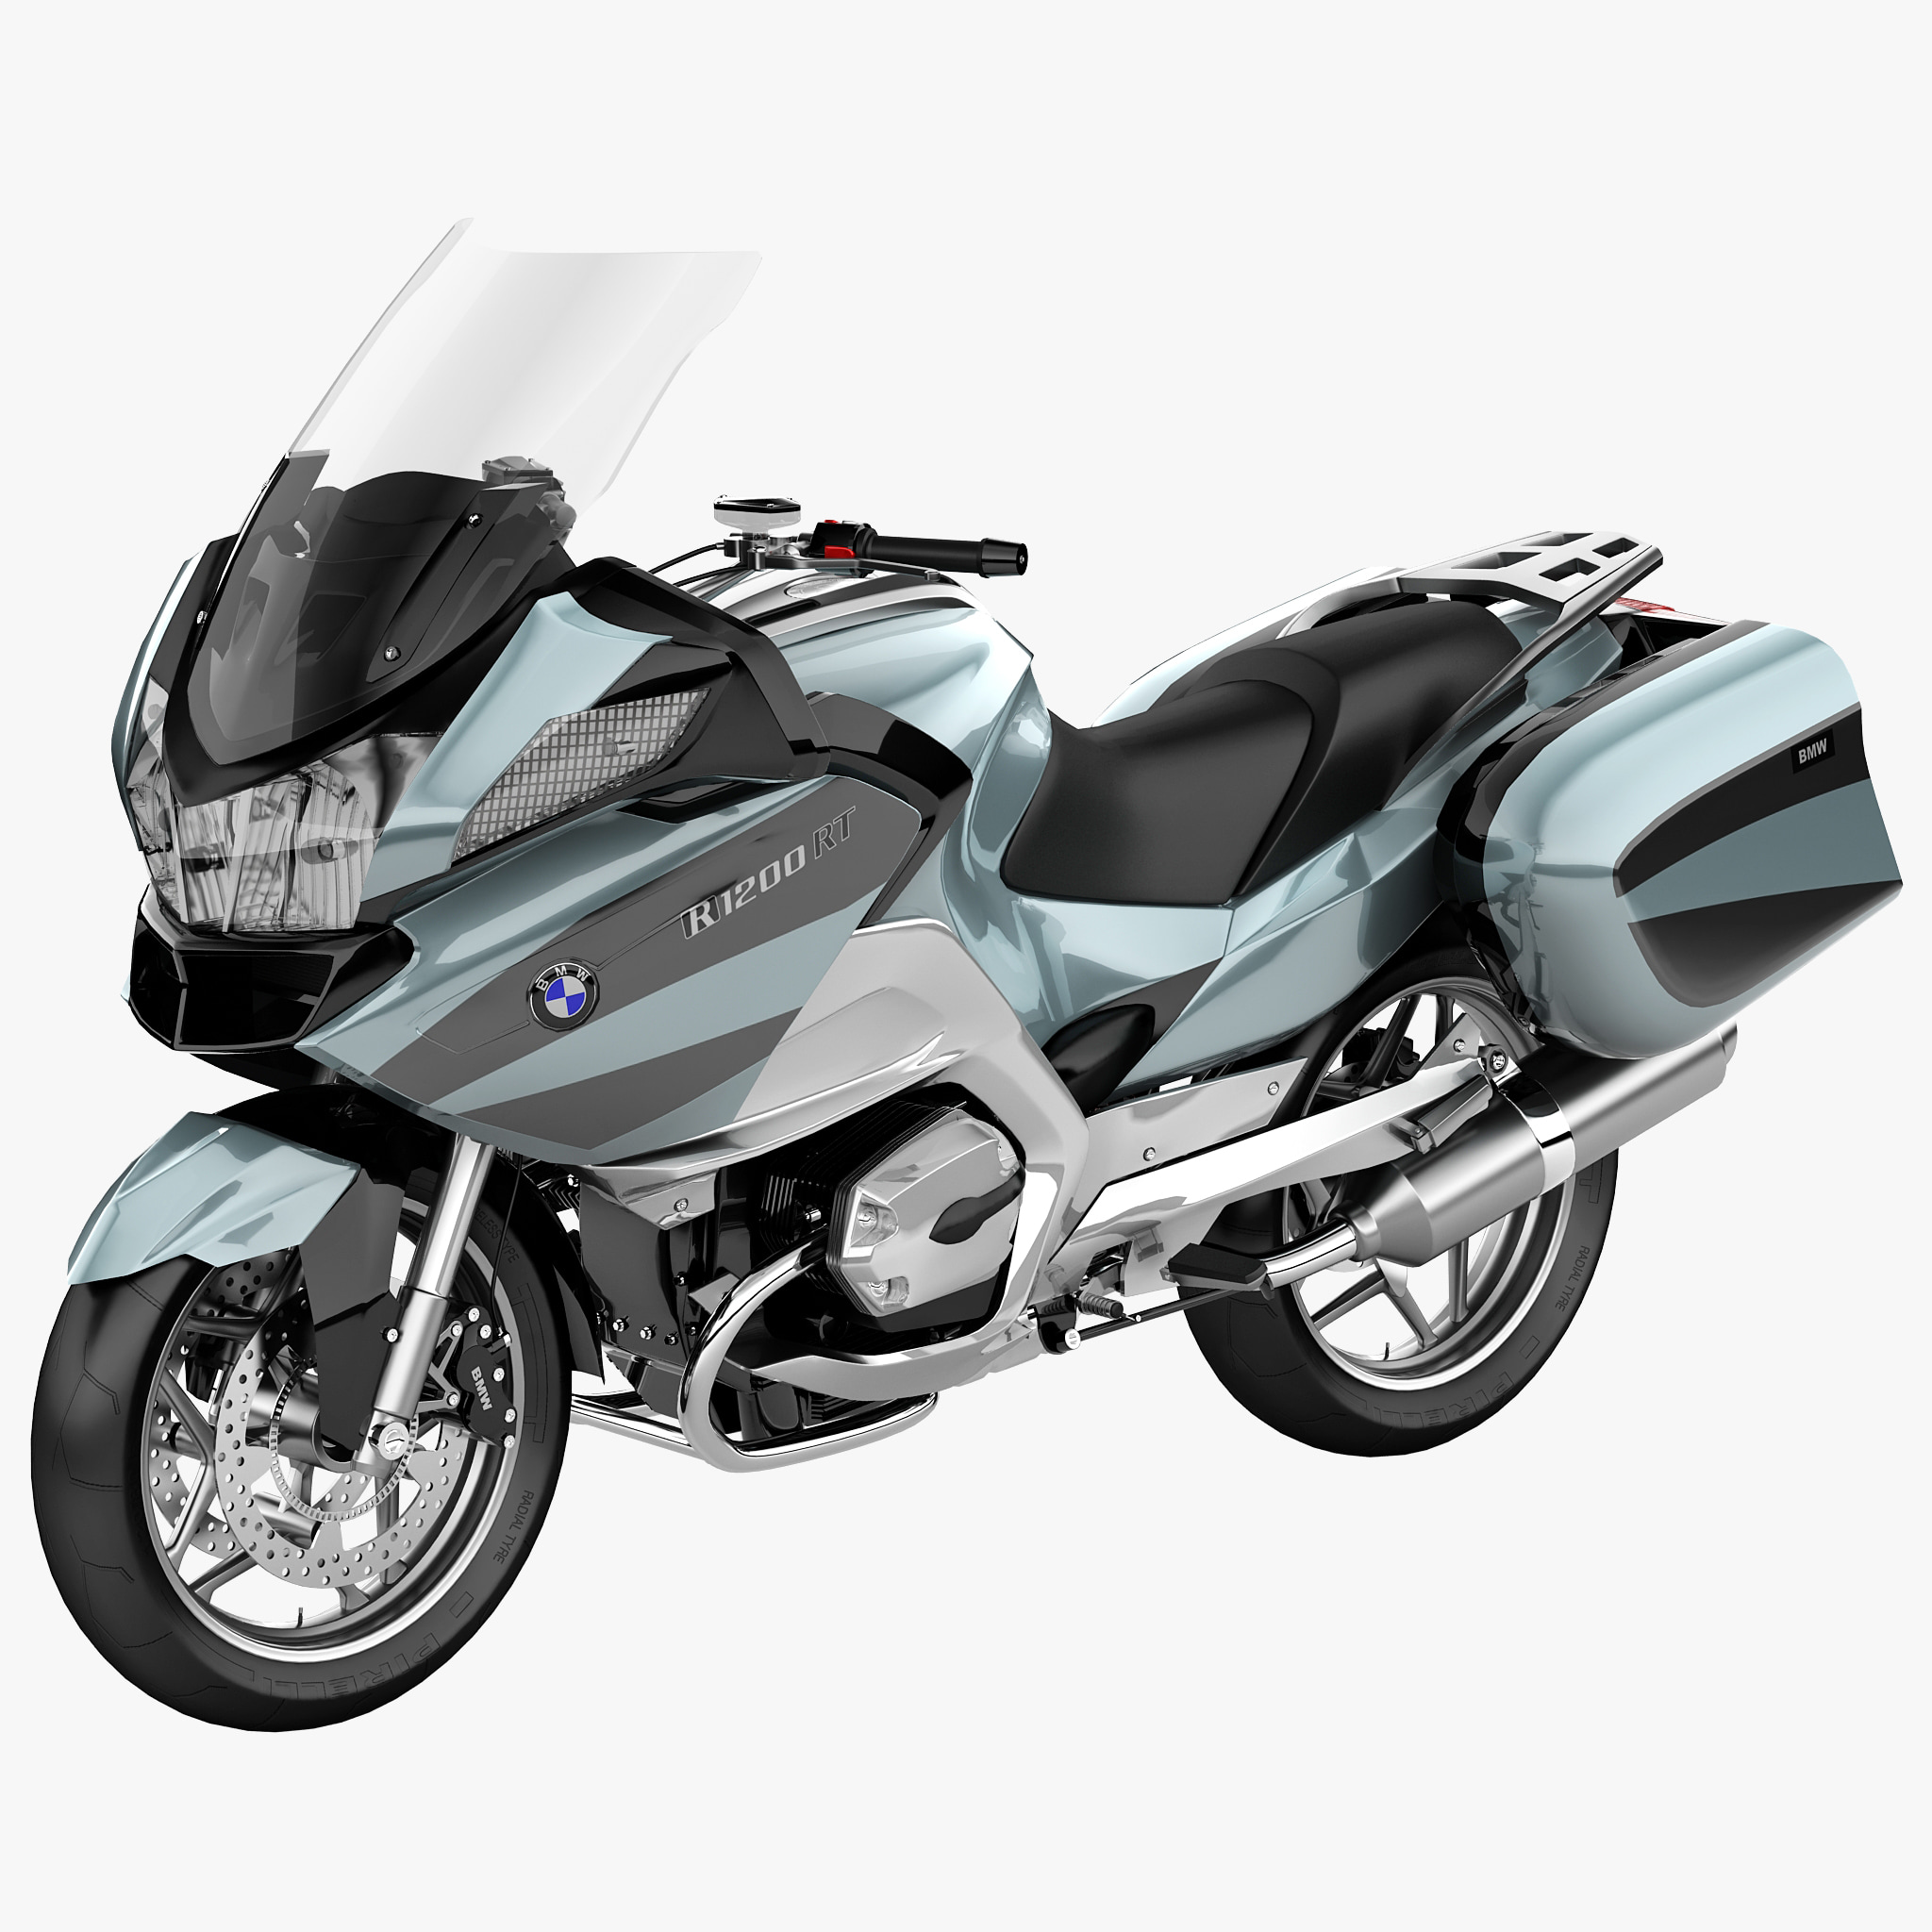 BMW Motorcycle R1200 RT_1.jpg